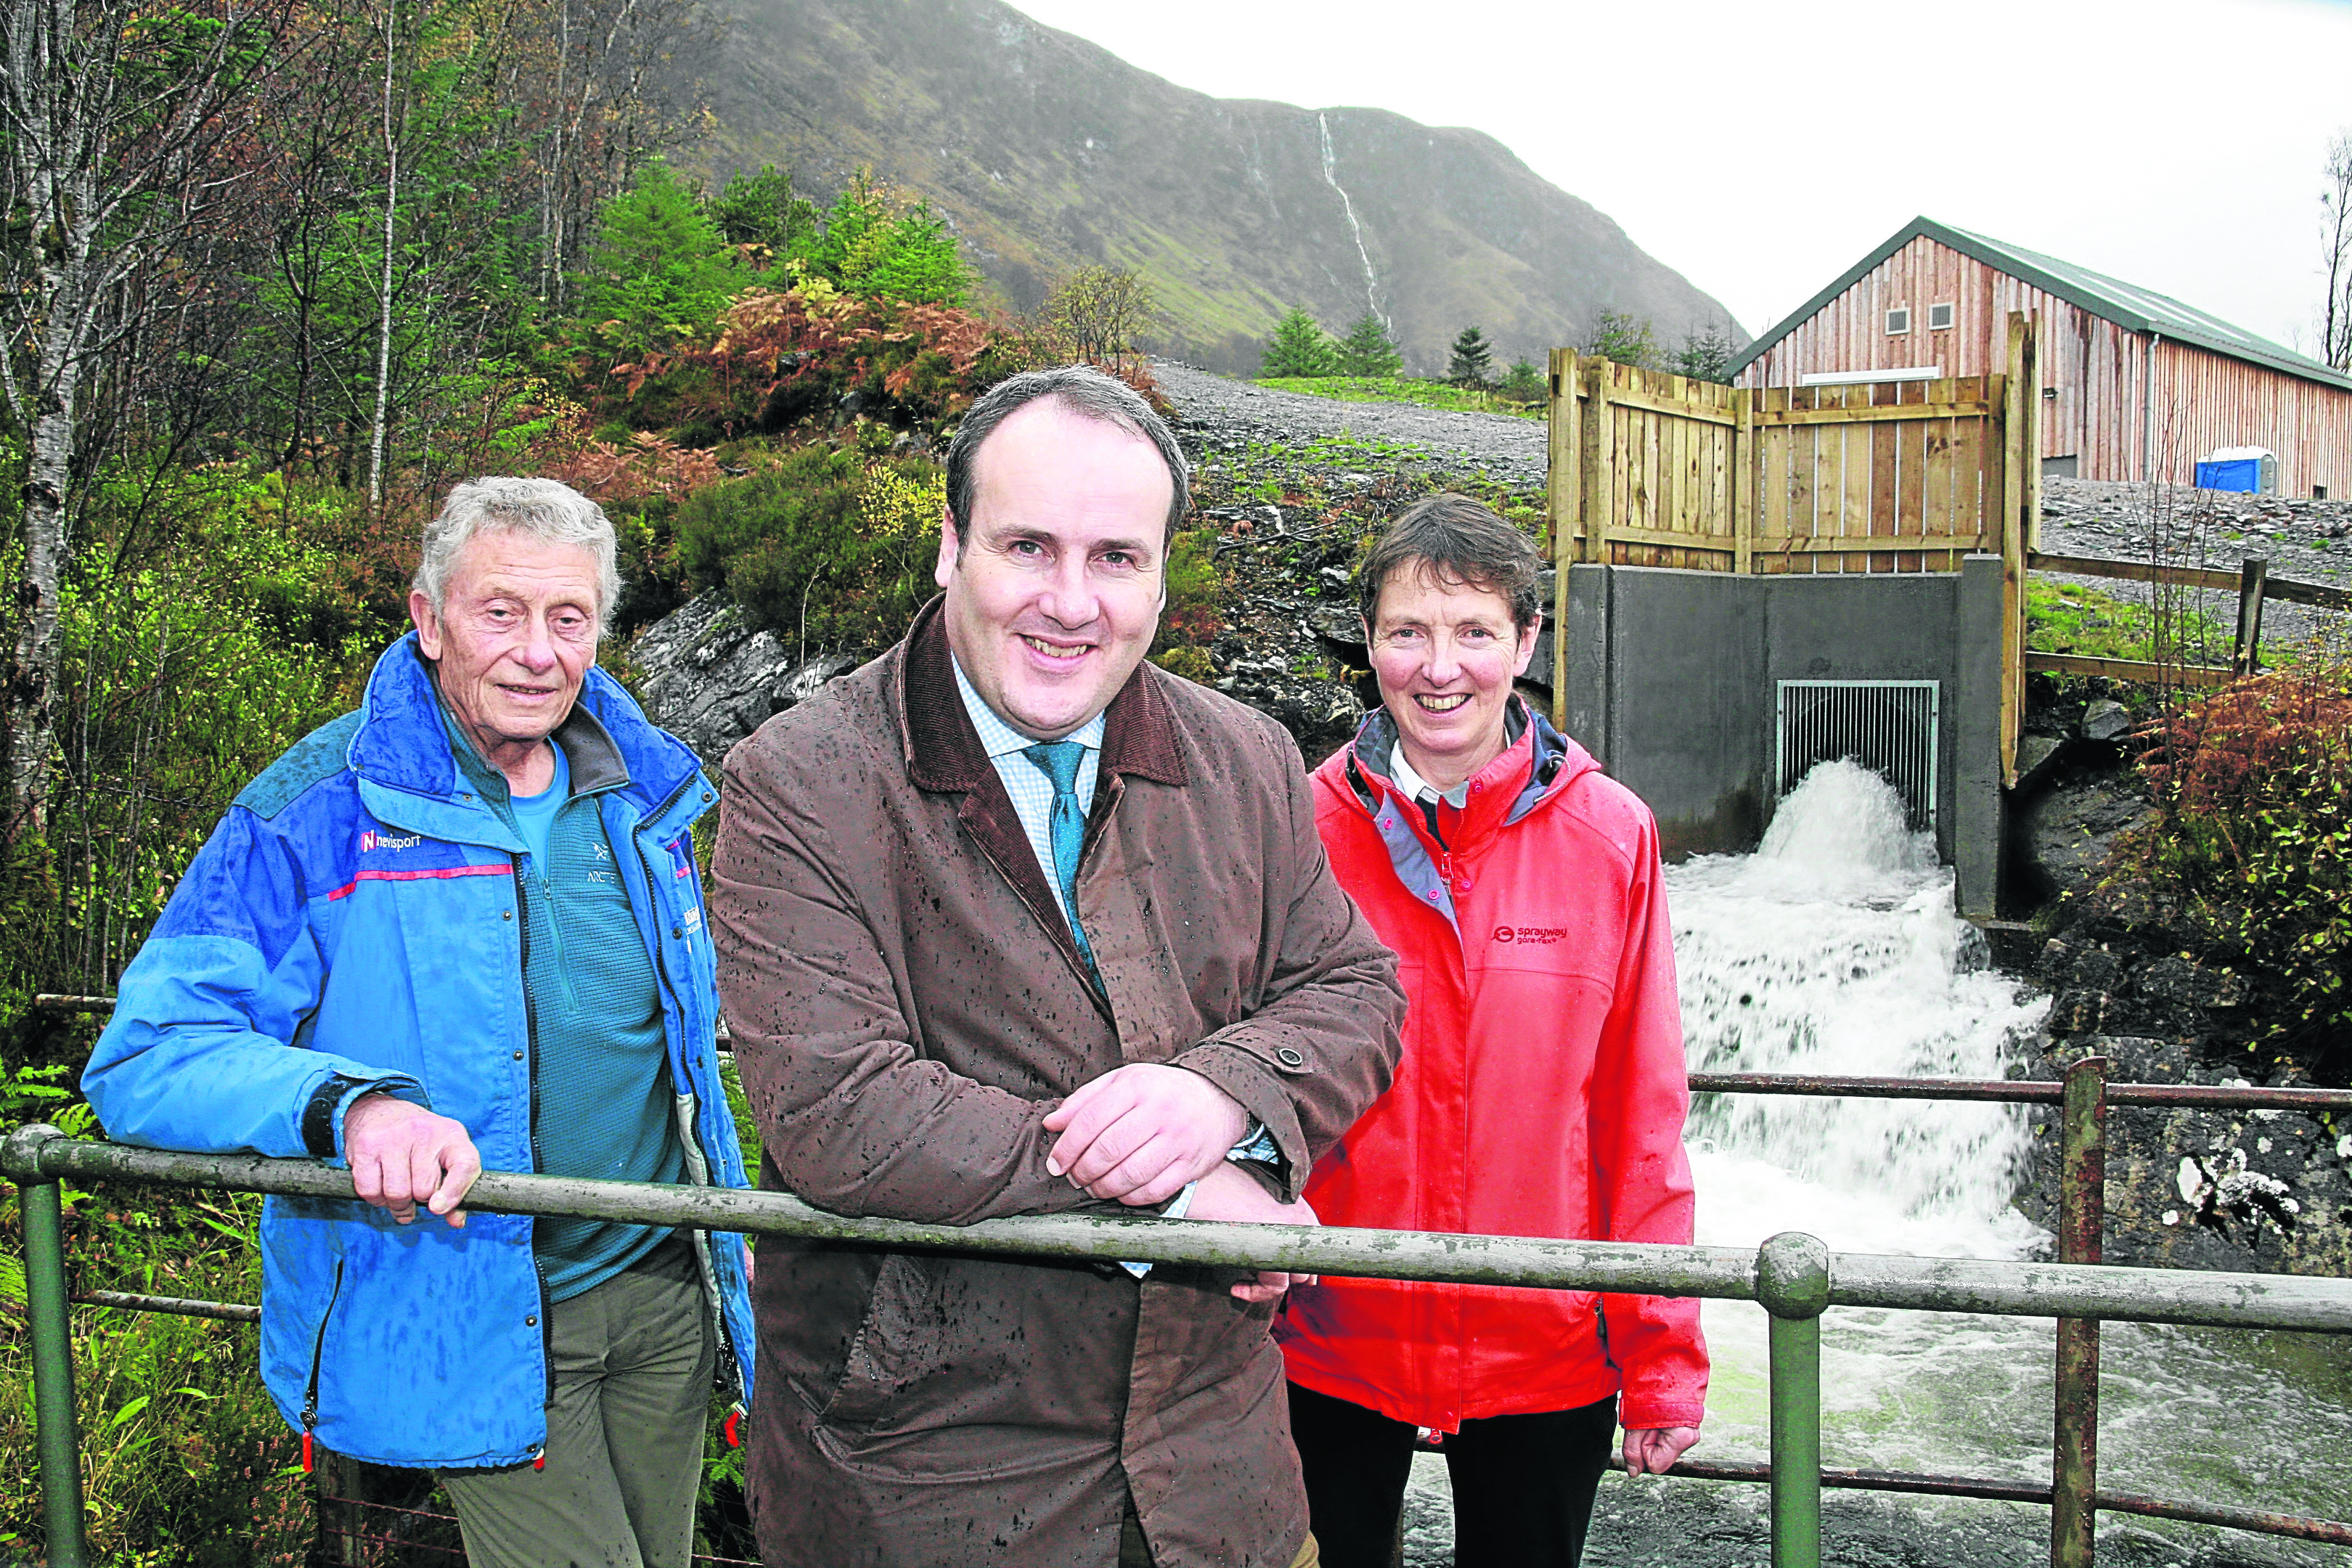 Ben Nevis Hydro Pictured at the opening of the new Hydro scheme at Nevis Range ( picture at water left to right) Ian Sykes chair of Nevis Range Board, Paul Wheelhouse MSP Minister for Business Innovation and Energy and Marian Austin Director Nevis Range Hydro Company. Story Rita Campbell Picture Anthony MacMillan Photography